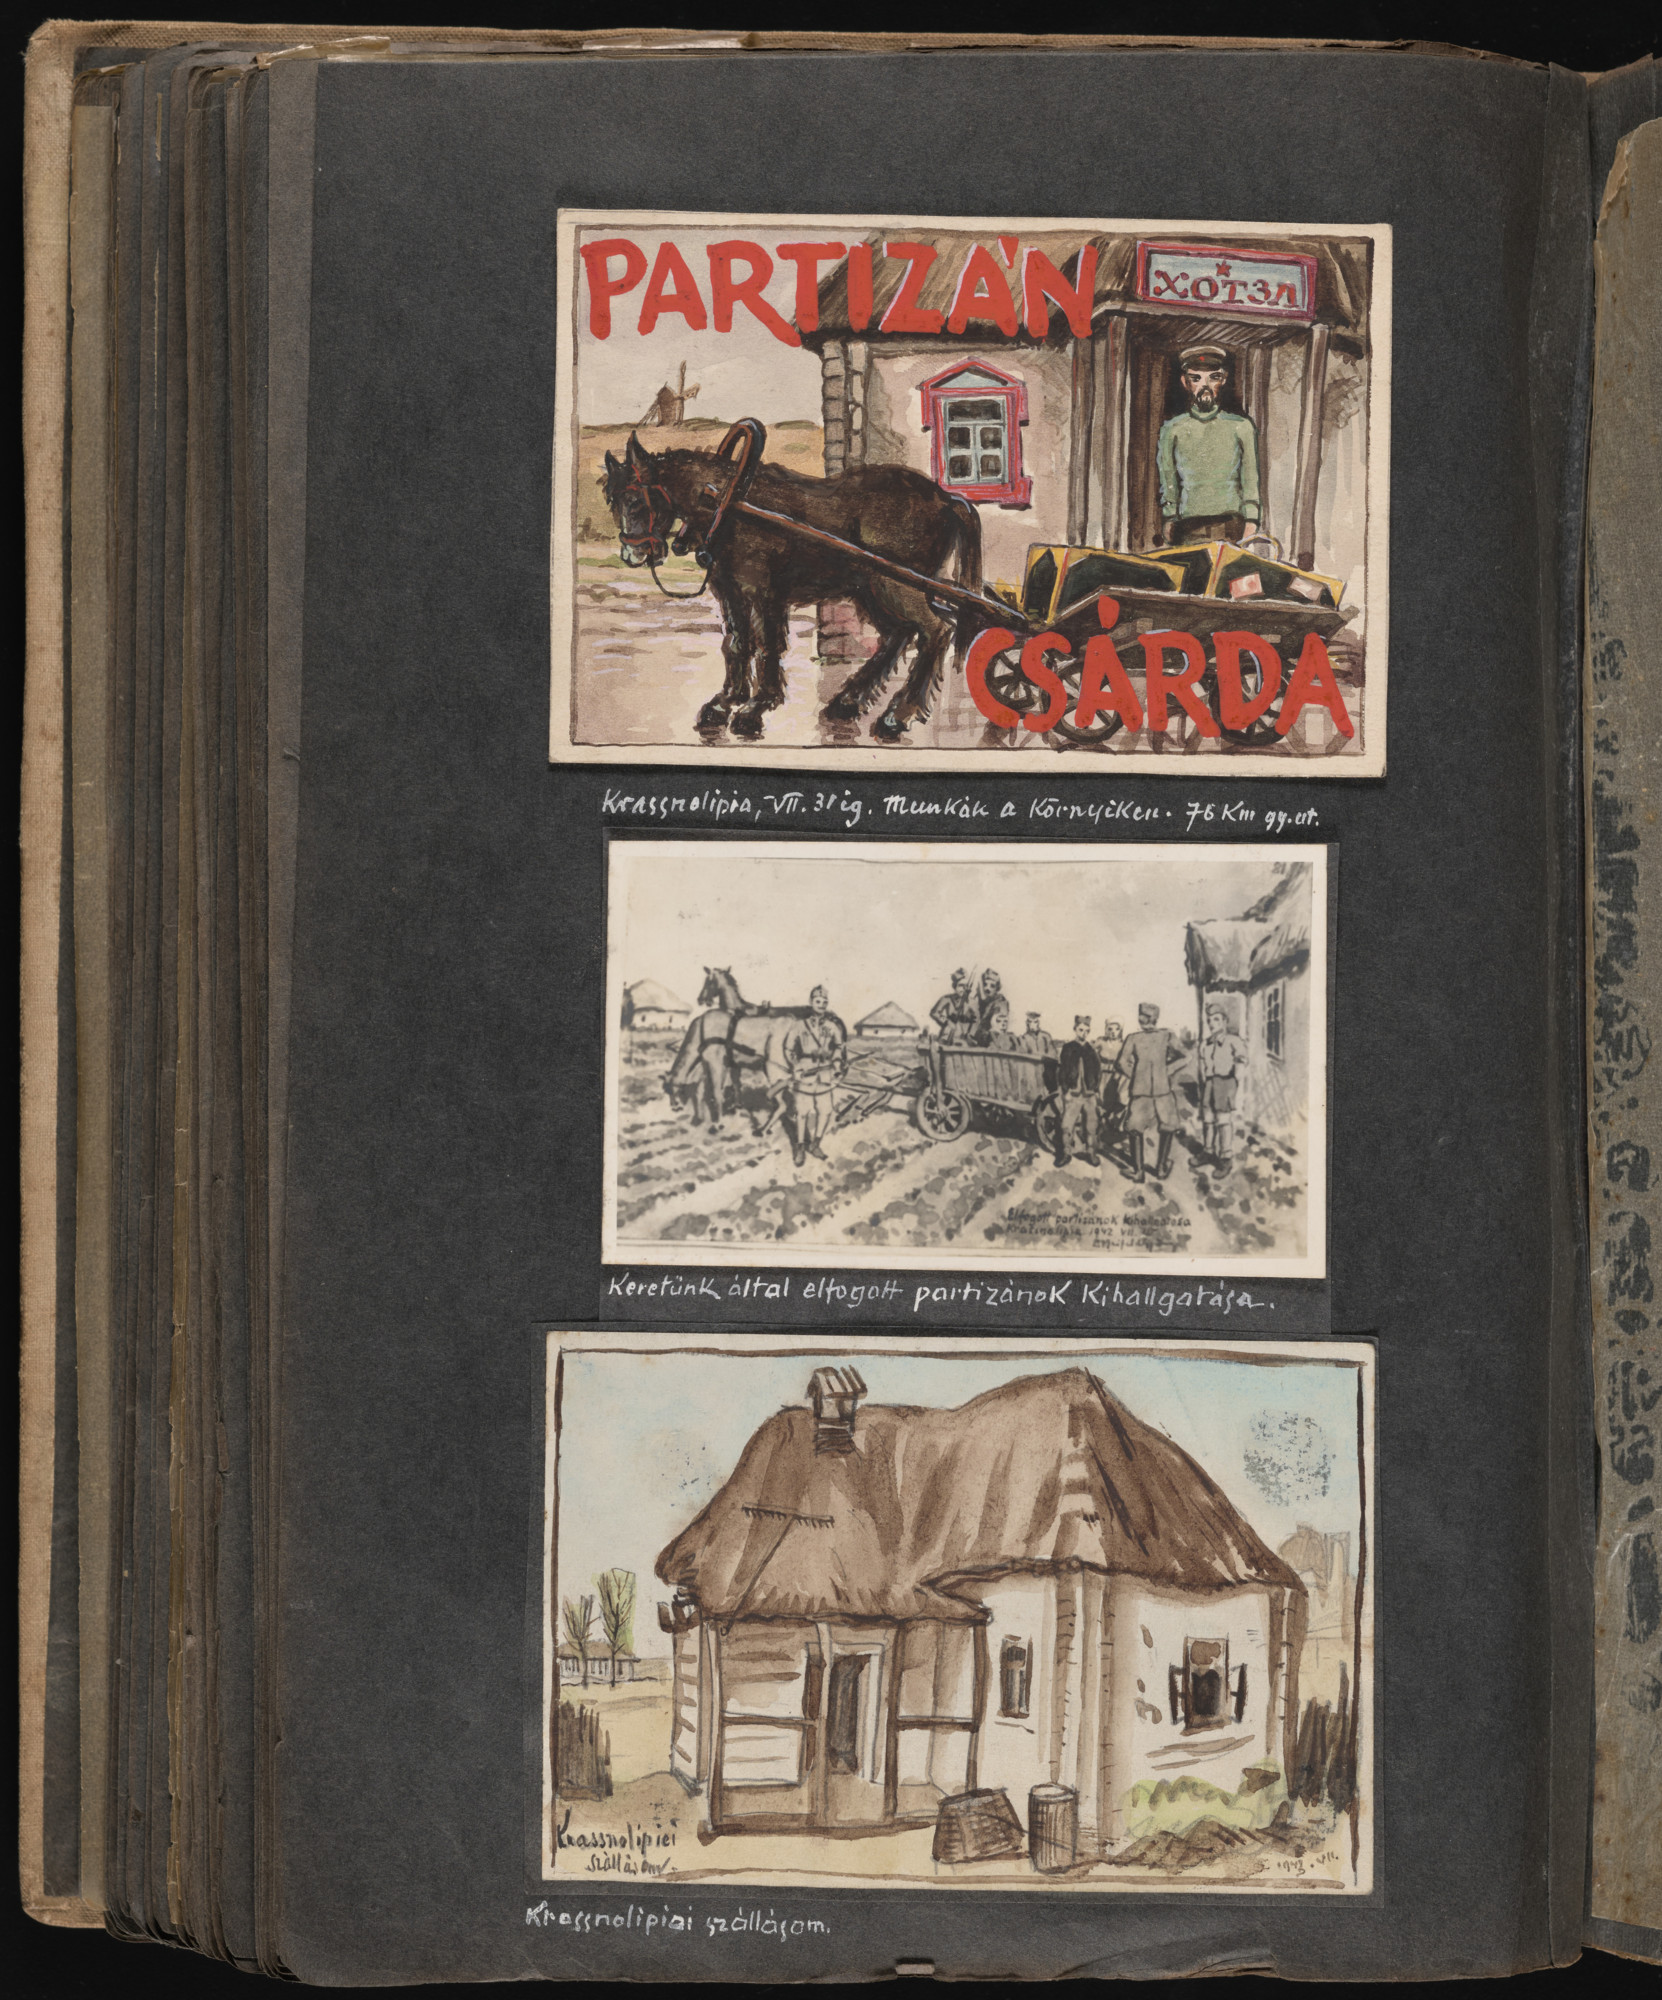 Watercolor entitled 'Partisan hotel and public house', Krassnolipia, Ukraine, until July 31, 1942' (top); drawing entitled 'The interrogation of partisans captured by our unit' (middle); watercolor entitled 'My lodgings in Krassnolipia' (bottom).  One page of an illustrated album produced by Gyorgy Beifeld (1902-1982), a Hungarian Jew from Budapest, who was drafted into the Munkaszolgalat (Hungarian Labor Service system) and spent more than a year on the Soviet front, from April 1942 through May 1943.  The album contains 402 drawings and watercolors by Byfield, as well as a narrative of his experiences.